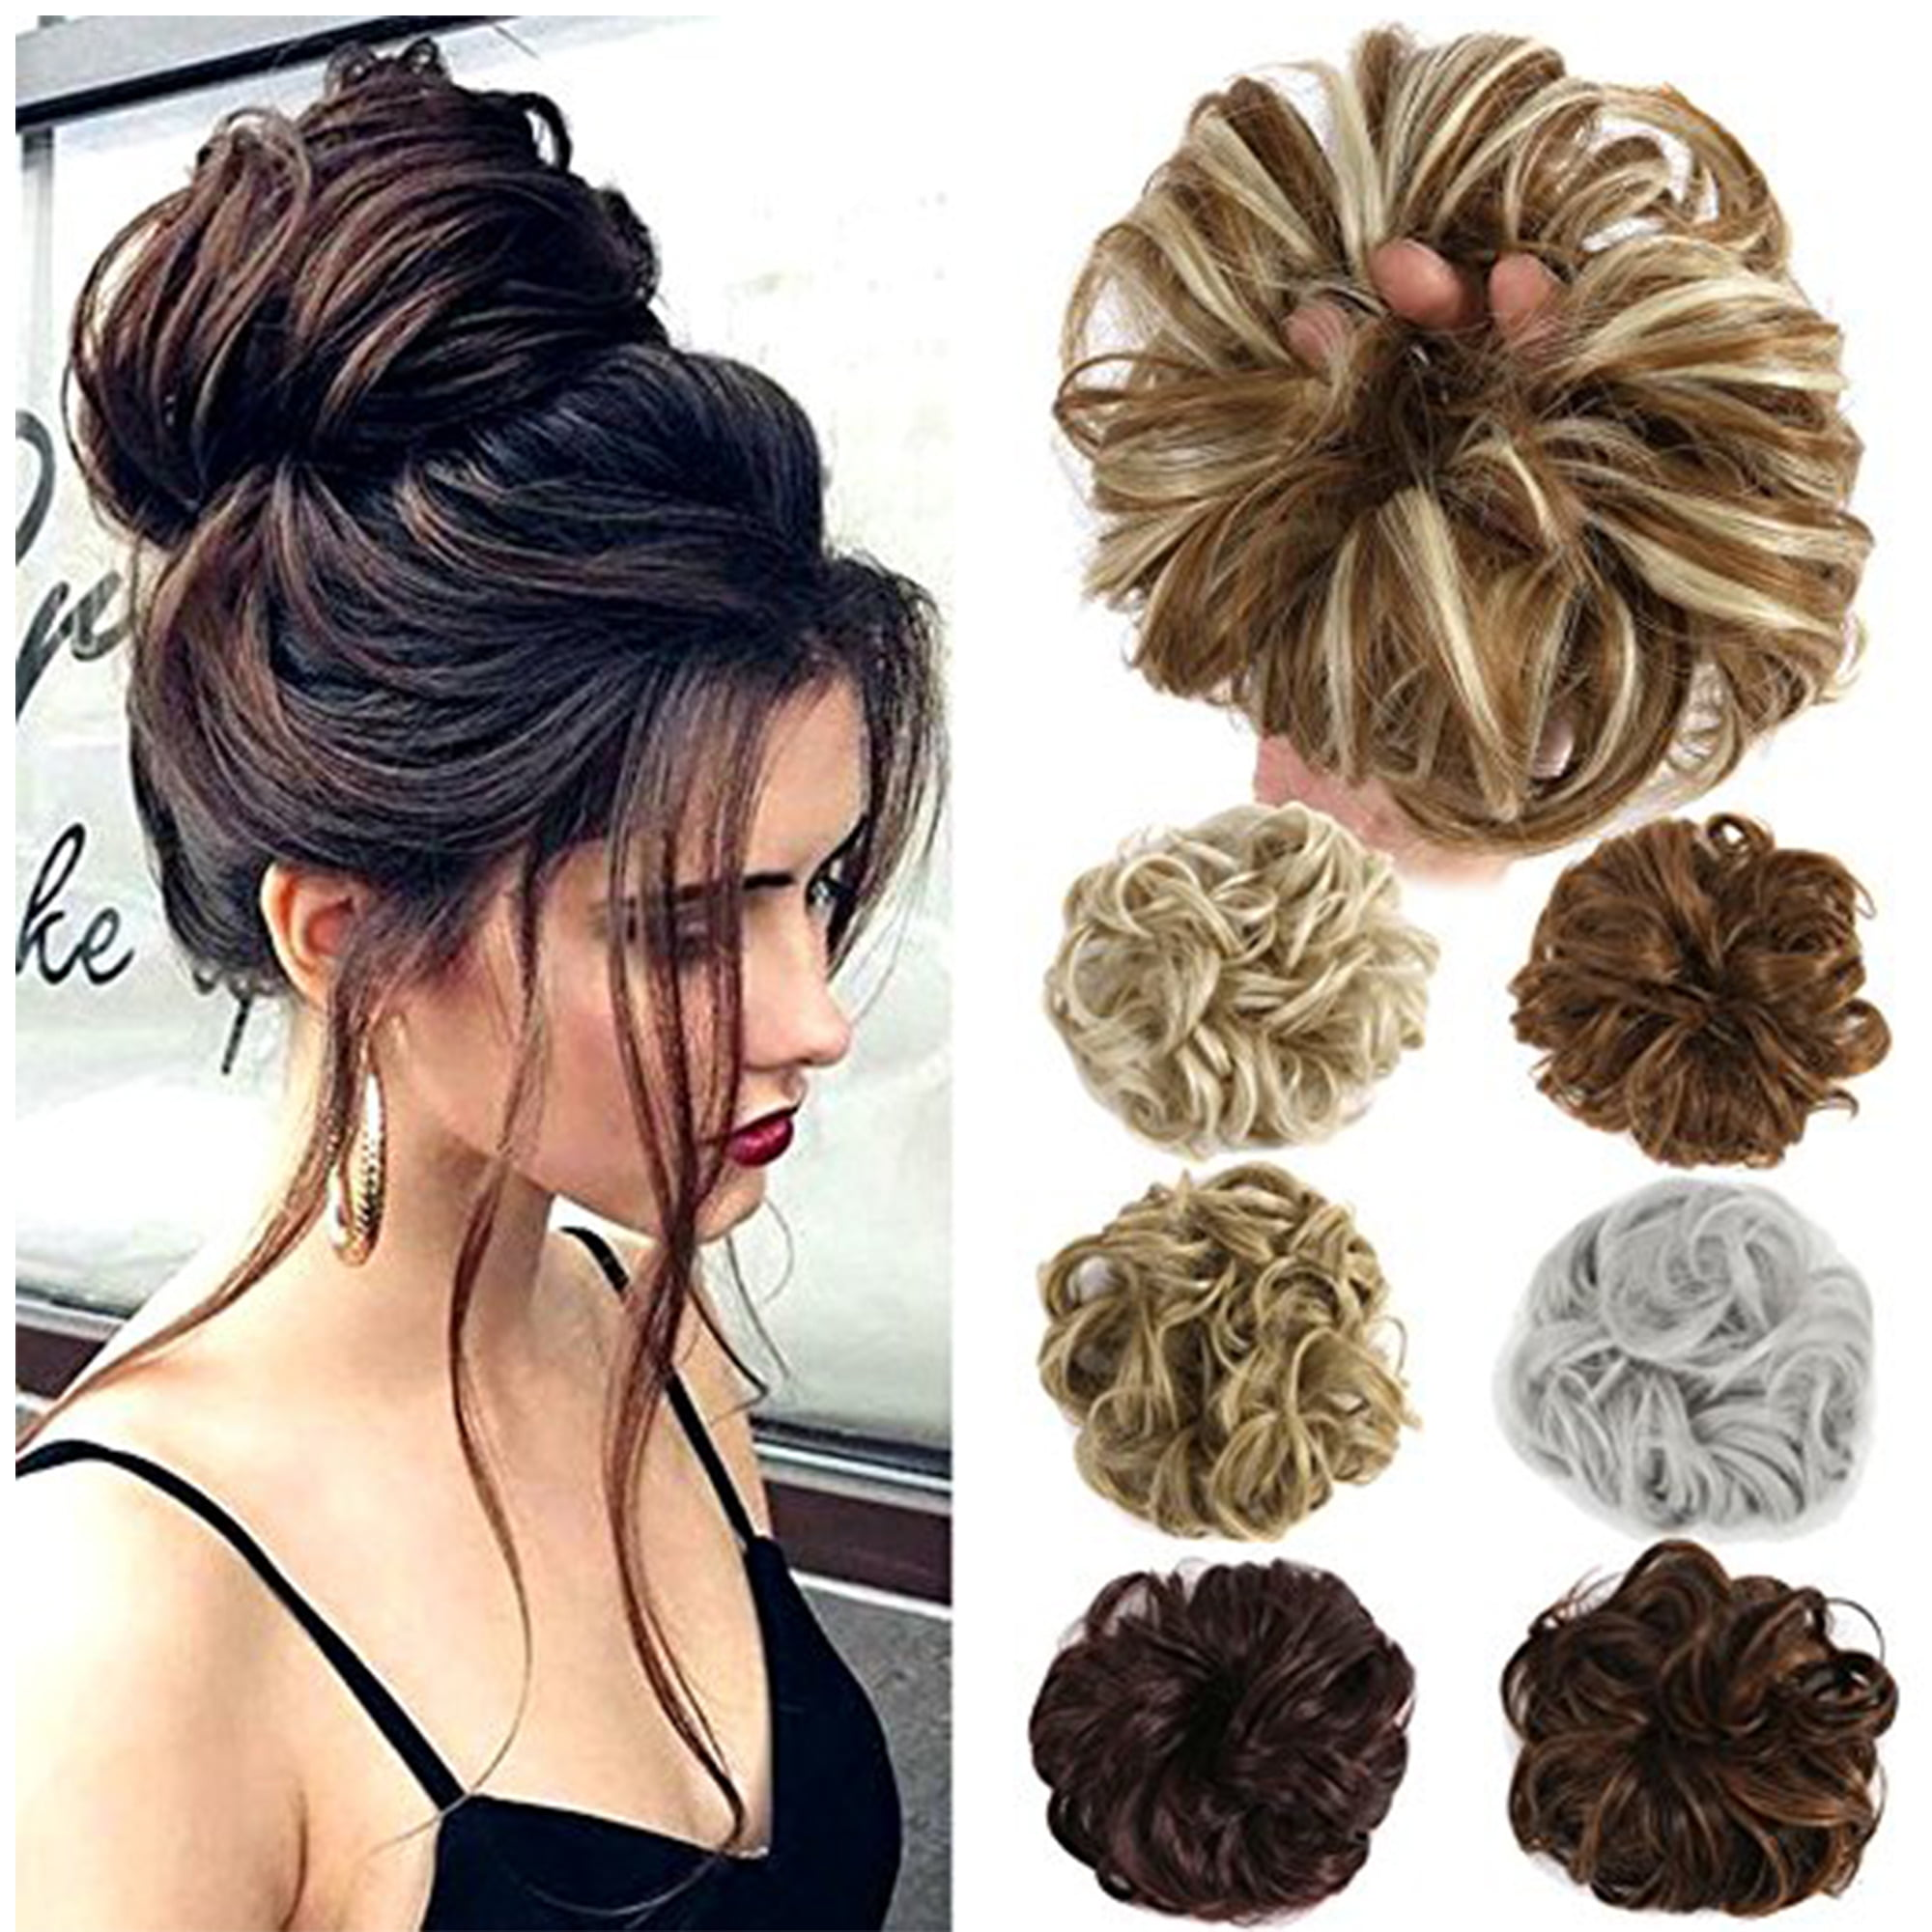 FLORATA Ponytail Buns Wrap Bun Chignon Hair Extensions Wavy Curly Wedding  Donut Hair Extensions Hairpiece Wig - Walmart.com